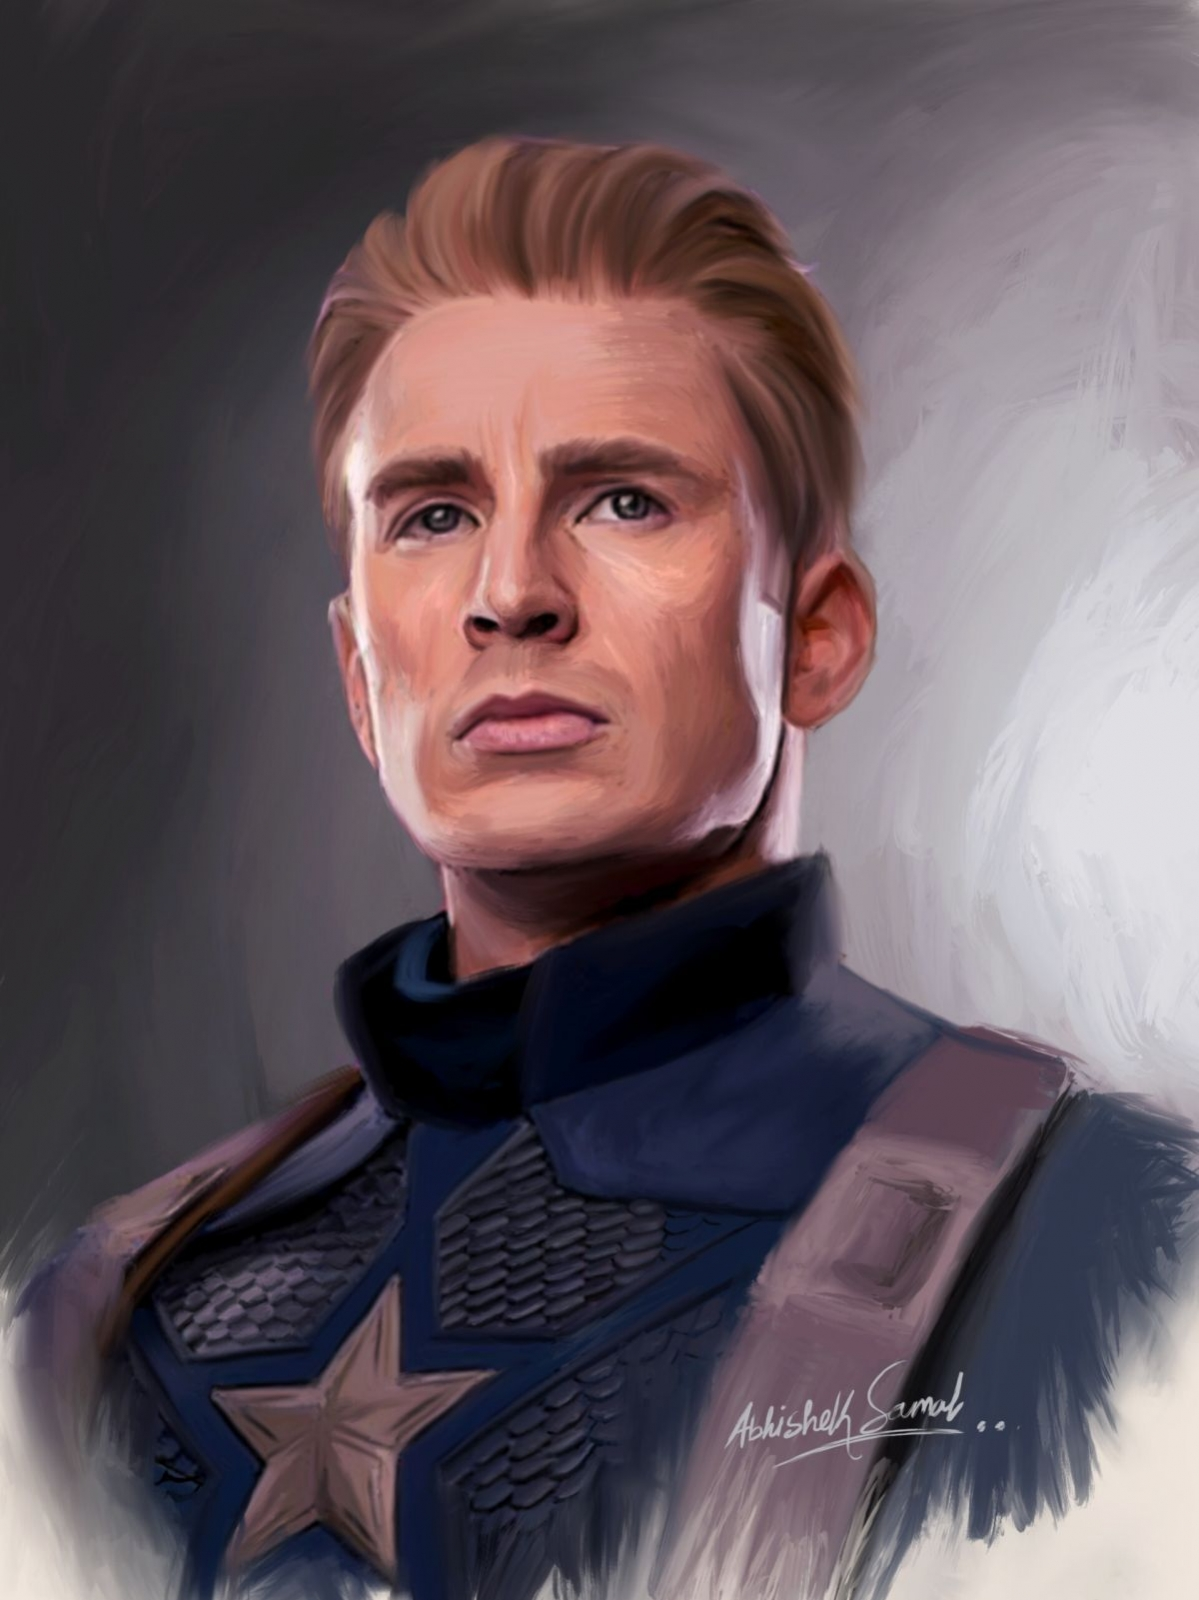 digital painting celebrity portrait captain america by abhishek samal